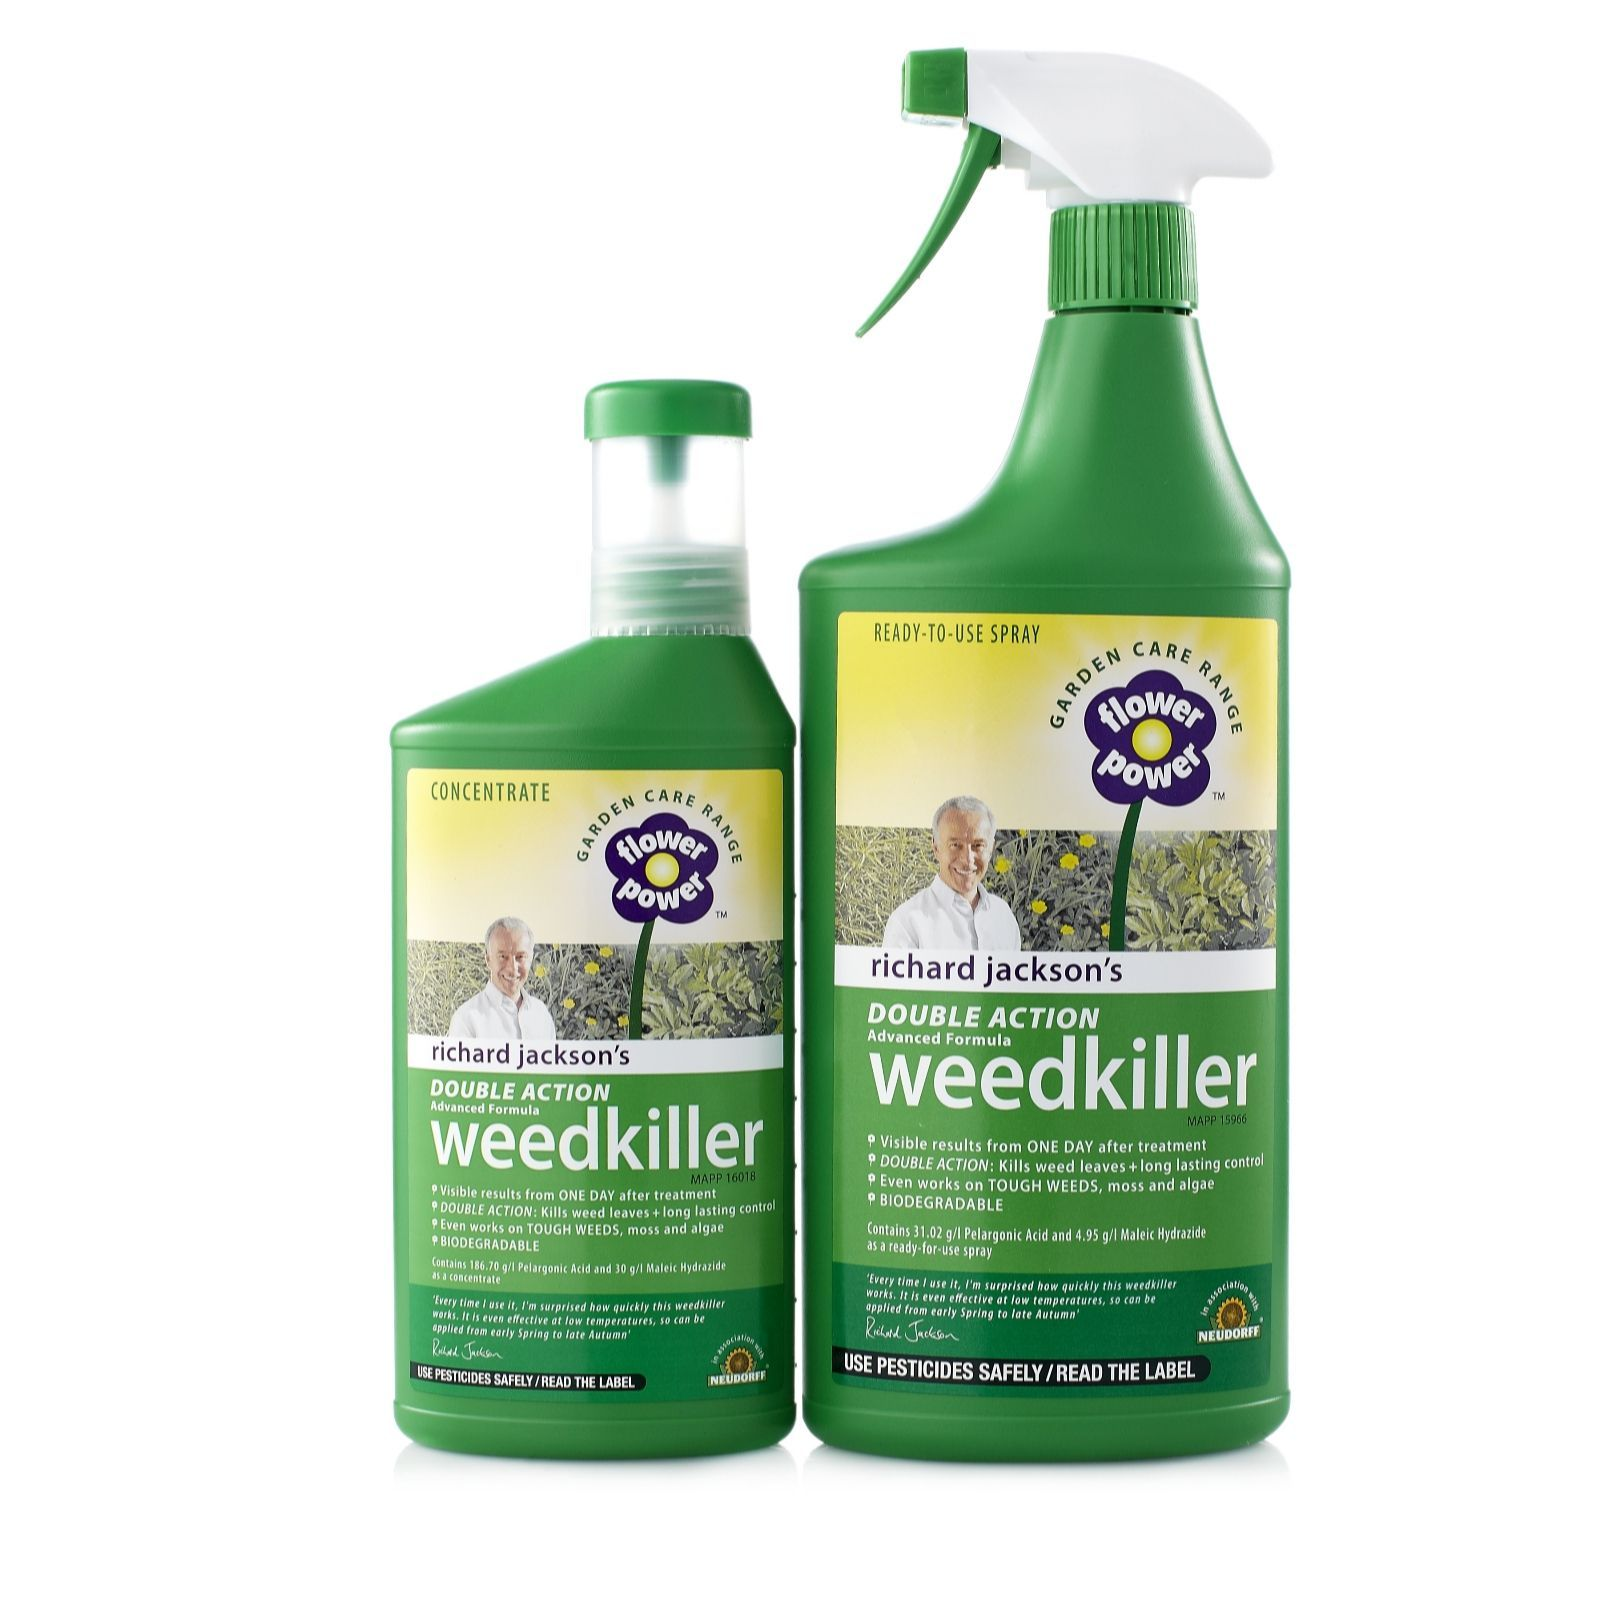 Elegant 502953   Richard Jacksonu0027s Weedkiller 500ml Concentrate With 1 Litre Spray  QVC Price: £21.96 · Garden ProductsProduct ...